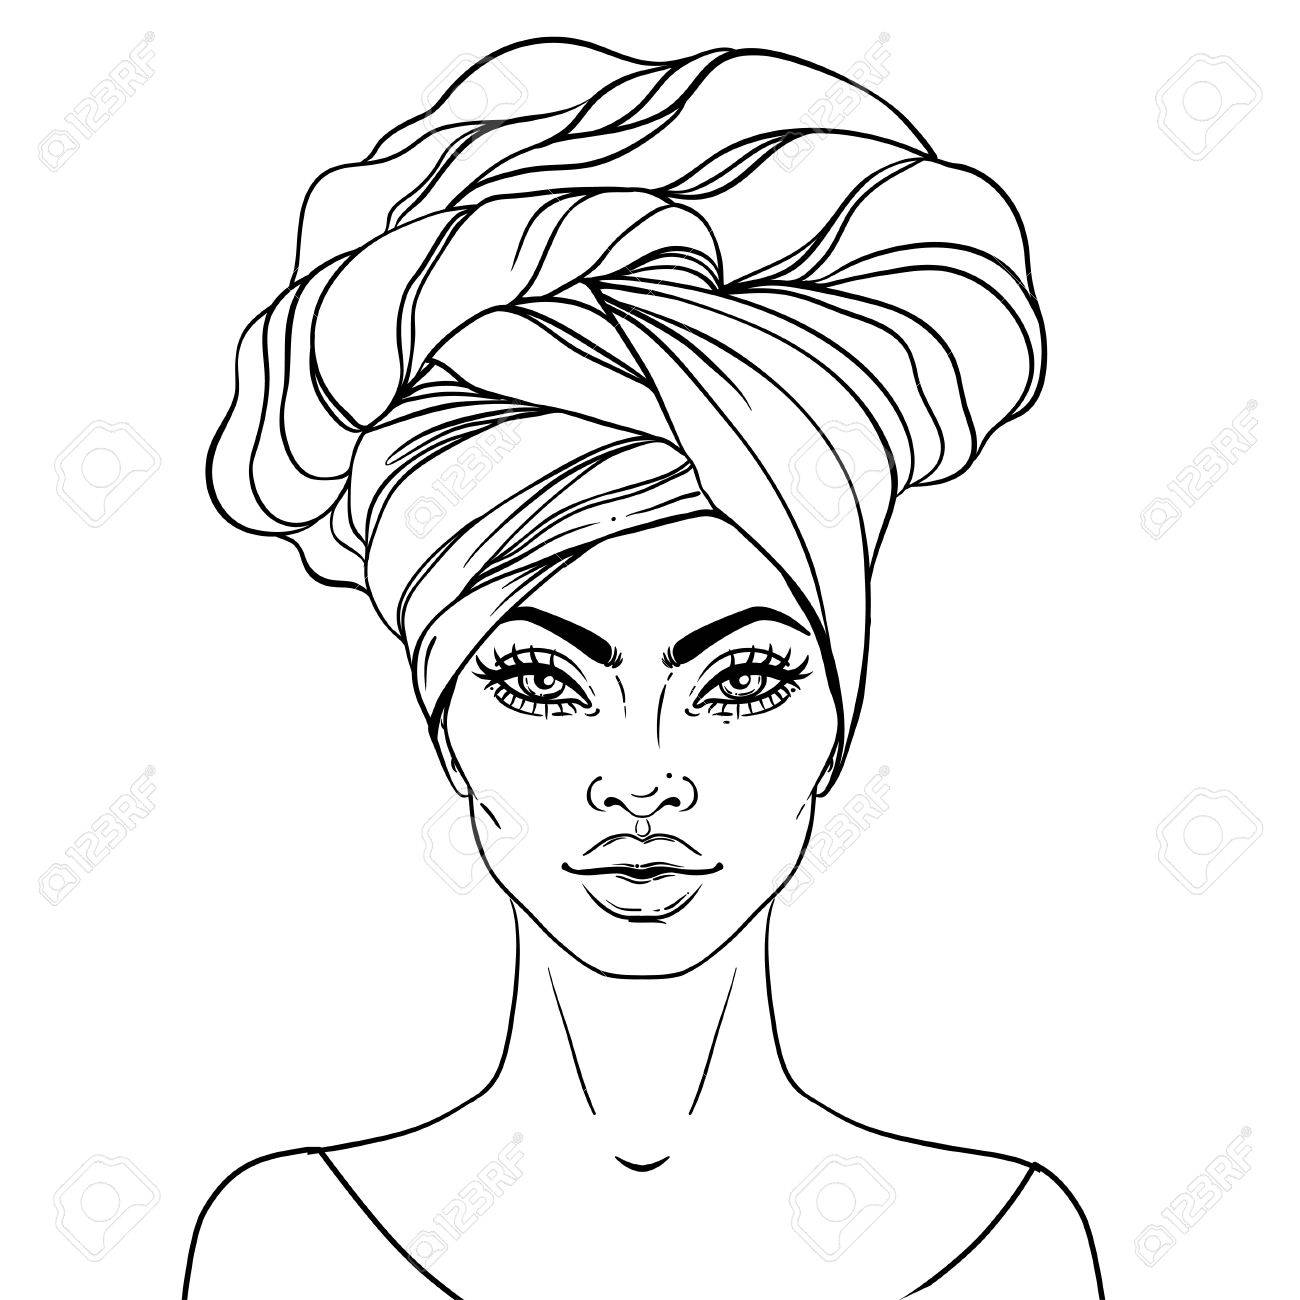 1300x1300 Black And White Drawing Of Face Woman Afro Curly Hair Lips Tumblr